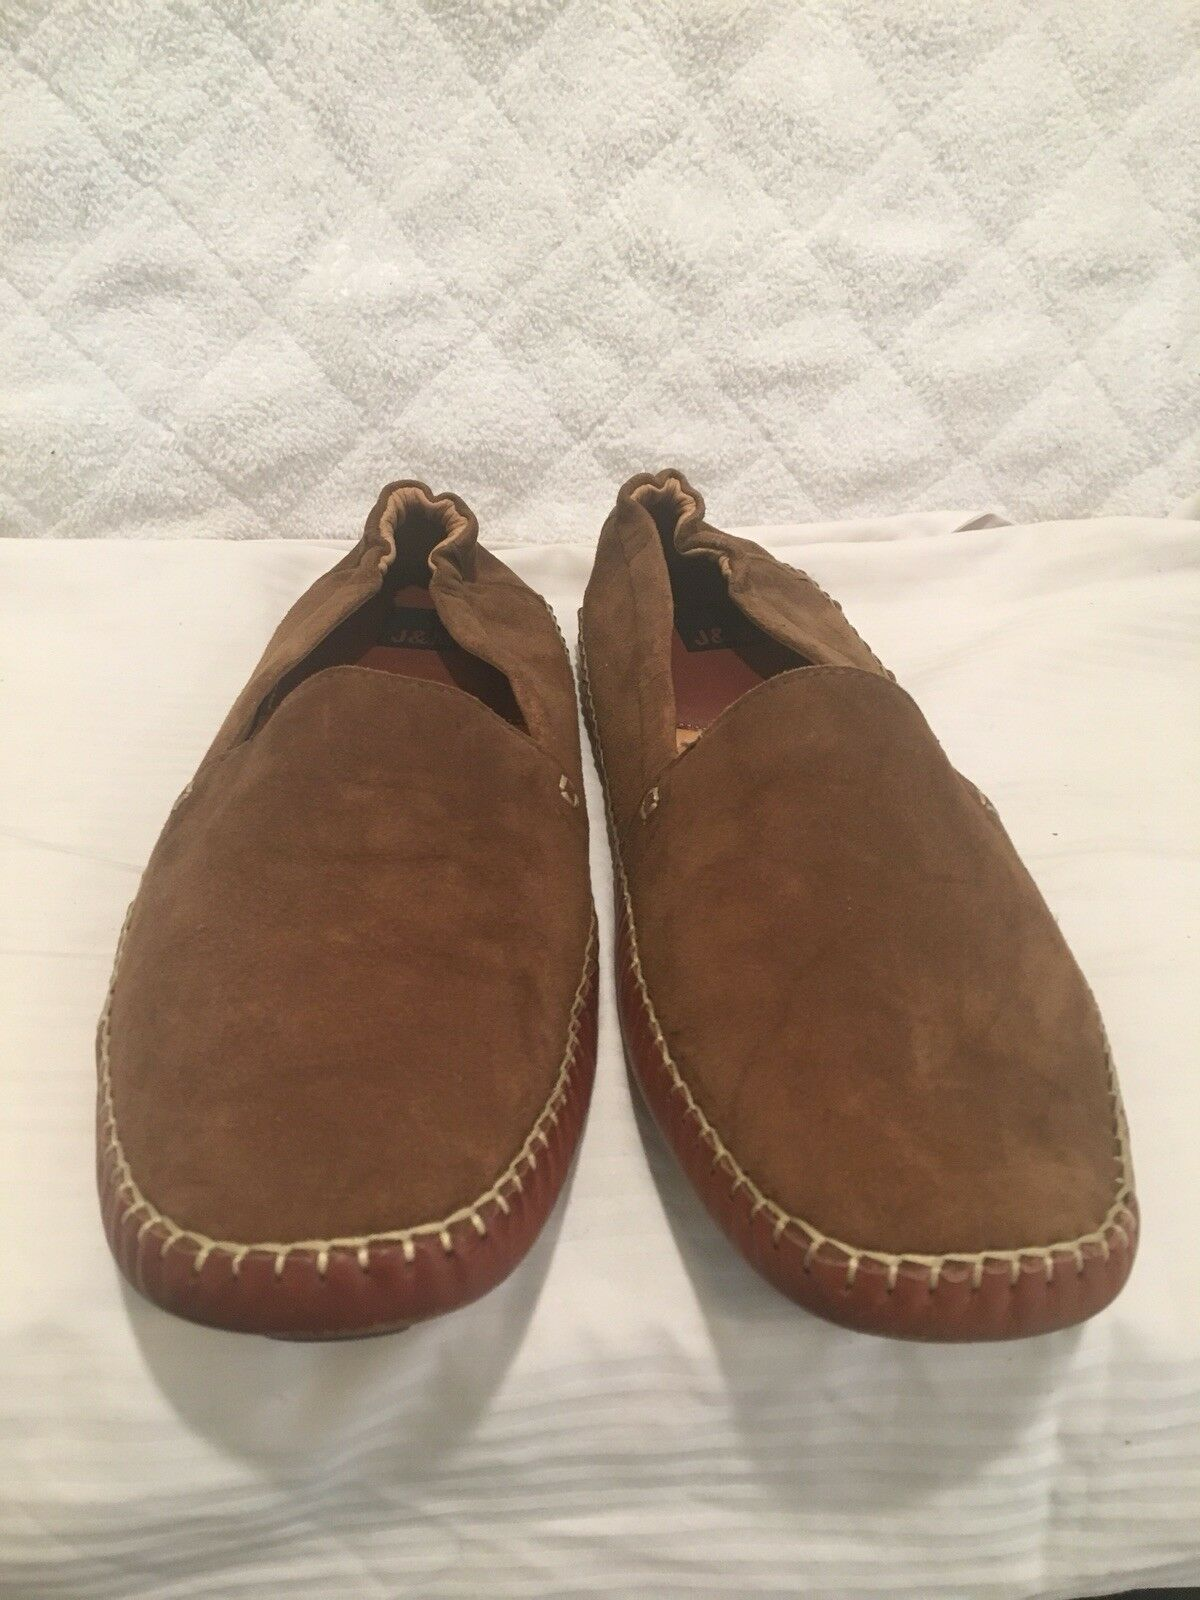 J.M MENS SUEDE LAFER SLIP ON LIGHT BROWEN COMFY SHOES AROUND CITY LIGHT SZ 11